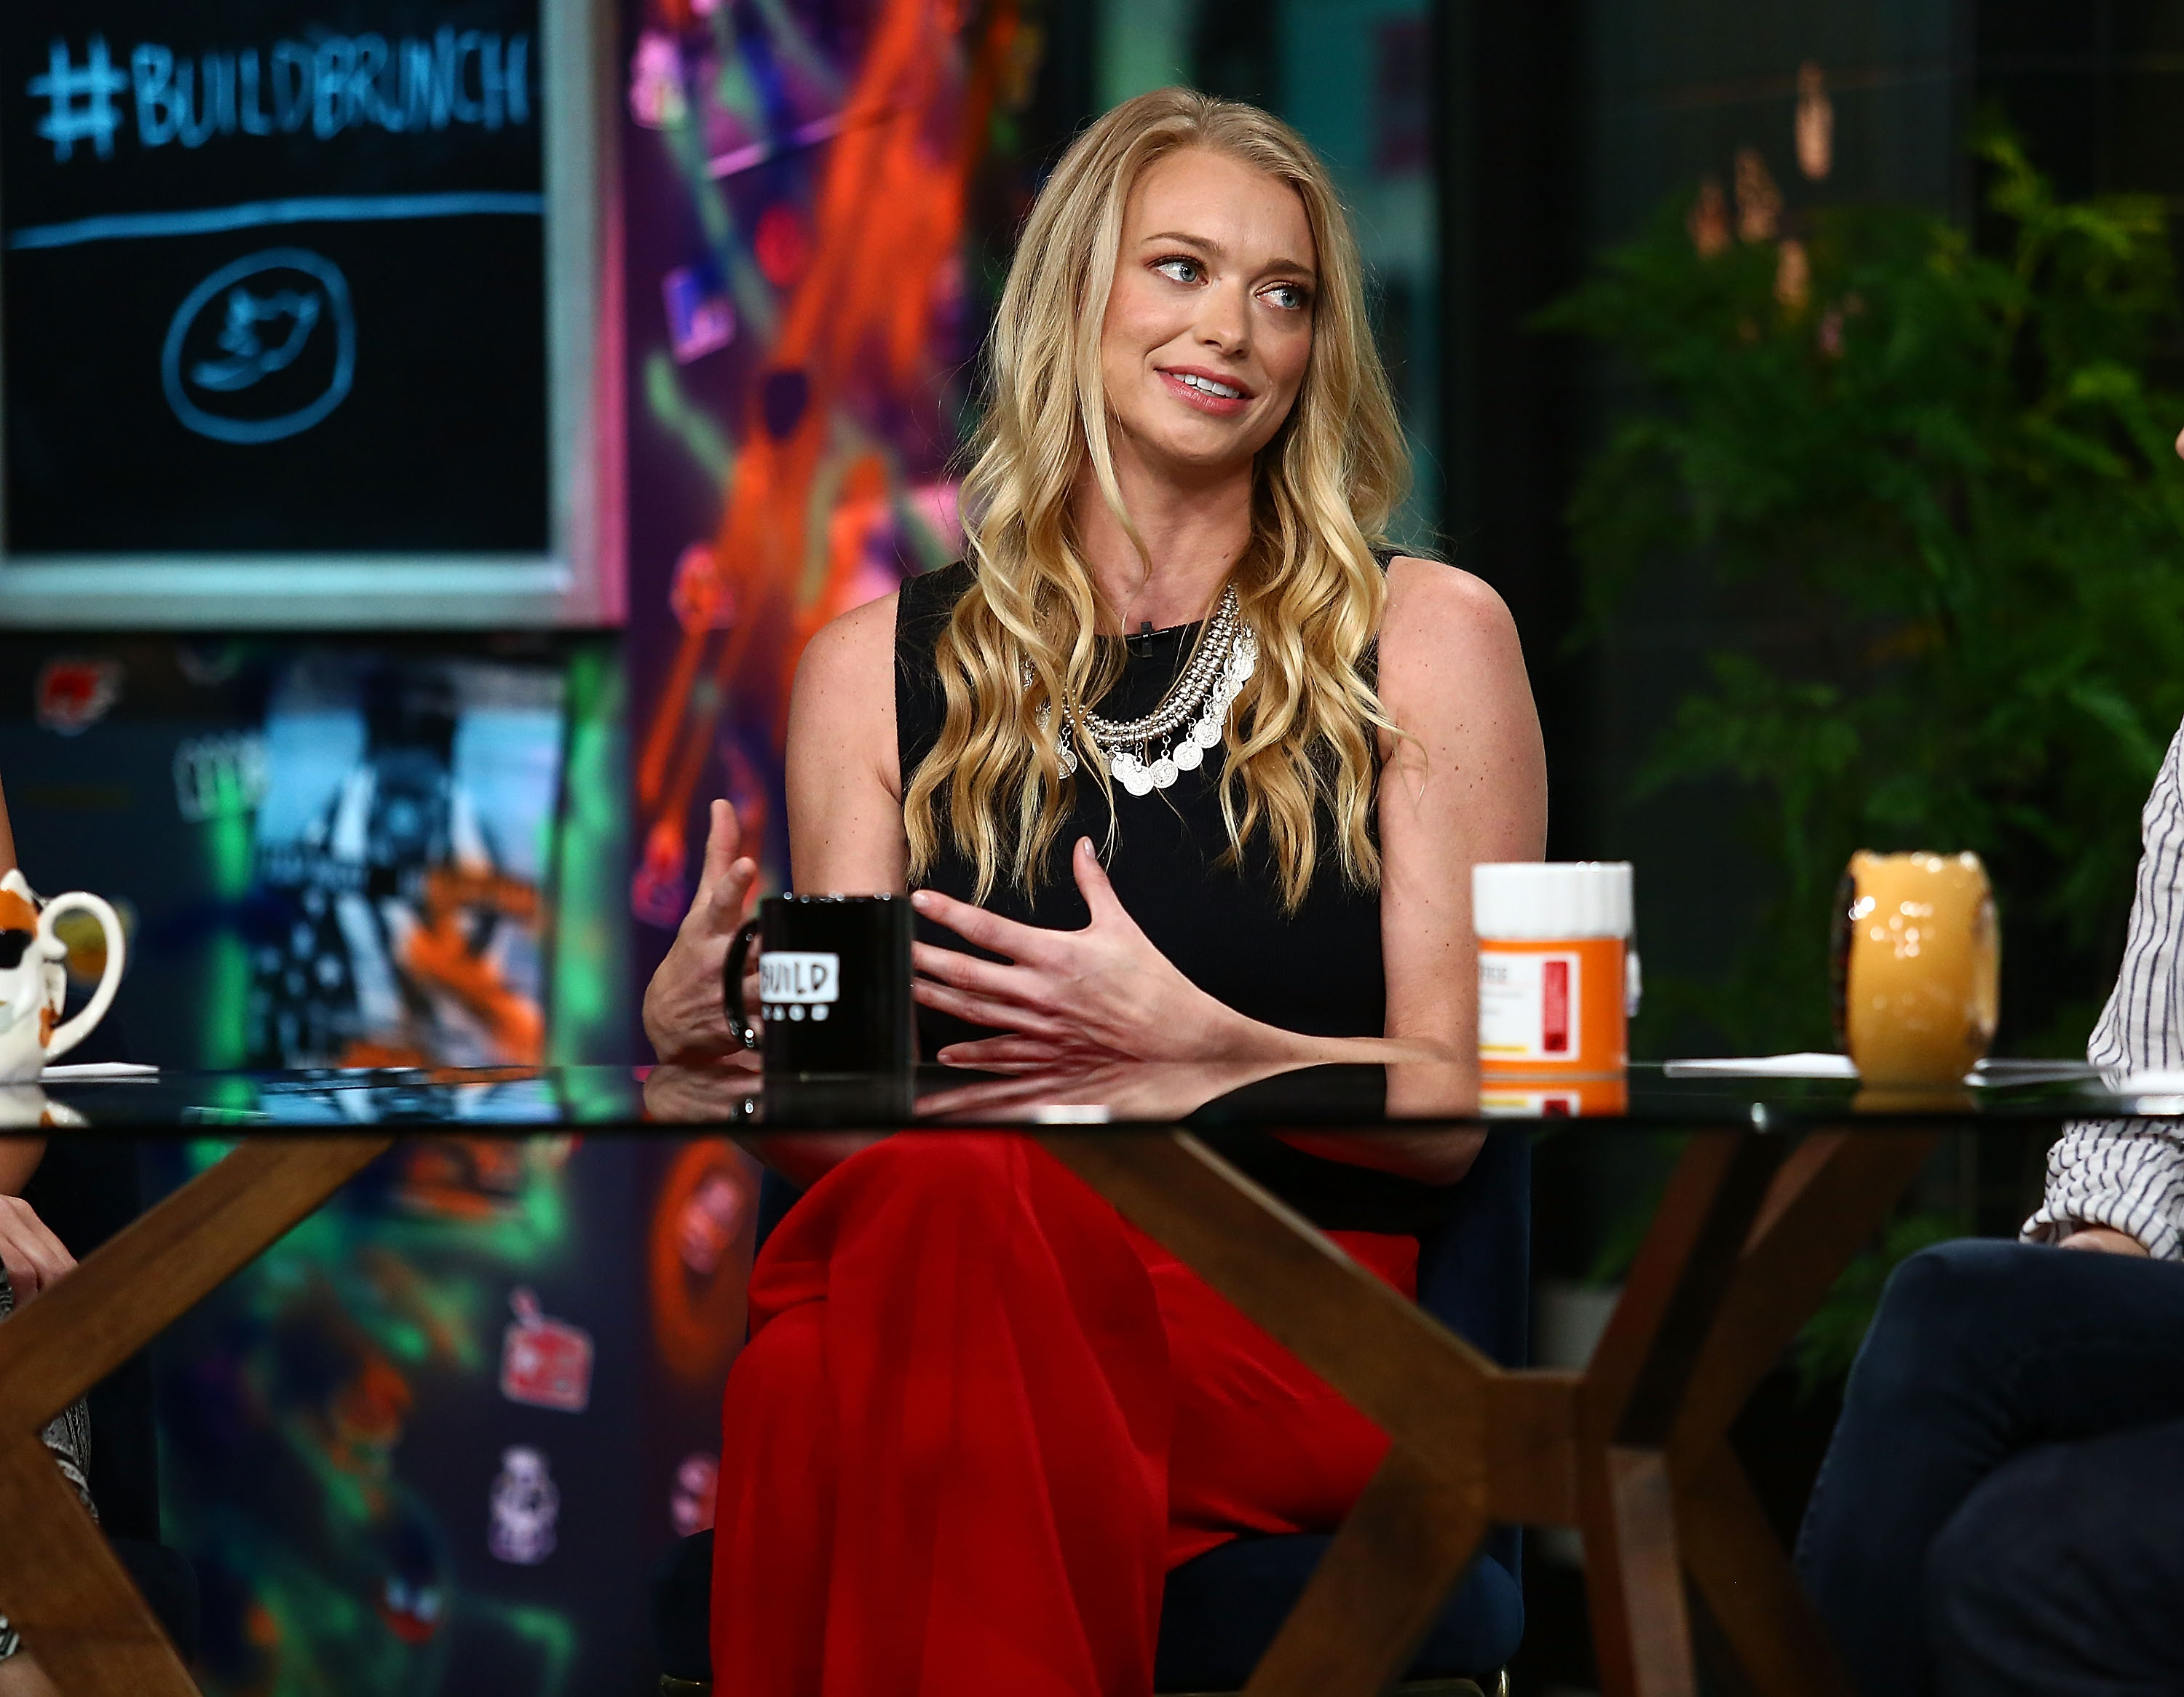 'This is Your Life in Silicon Valley': The League founder and CEO Amanda Bradford on modern dating, and whether Bumble is a 'real' startup